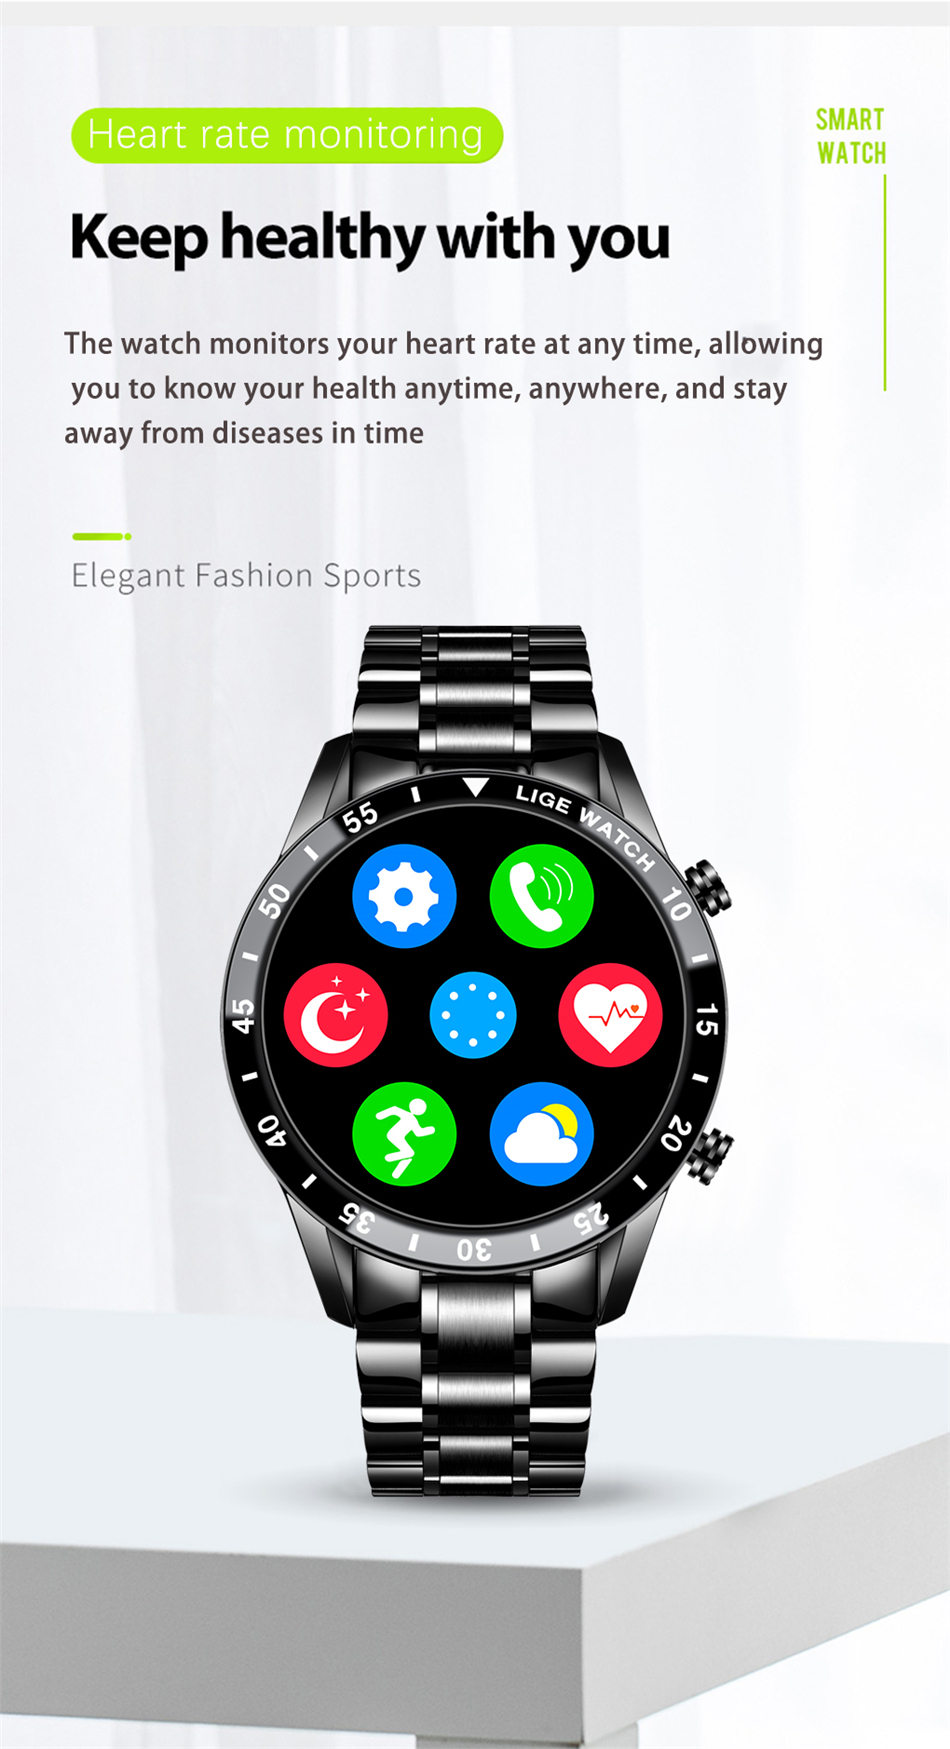 H53192fdf51024610b9b769eb7ae9dfe89 LIGE 2021 New Men Smart Watch Bluetooth Call Watch IP67 Waterproof Sports Fitness Watch For Android IOS Smart Watch 2021 + Box